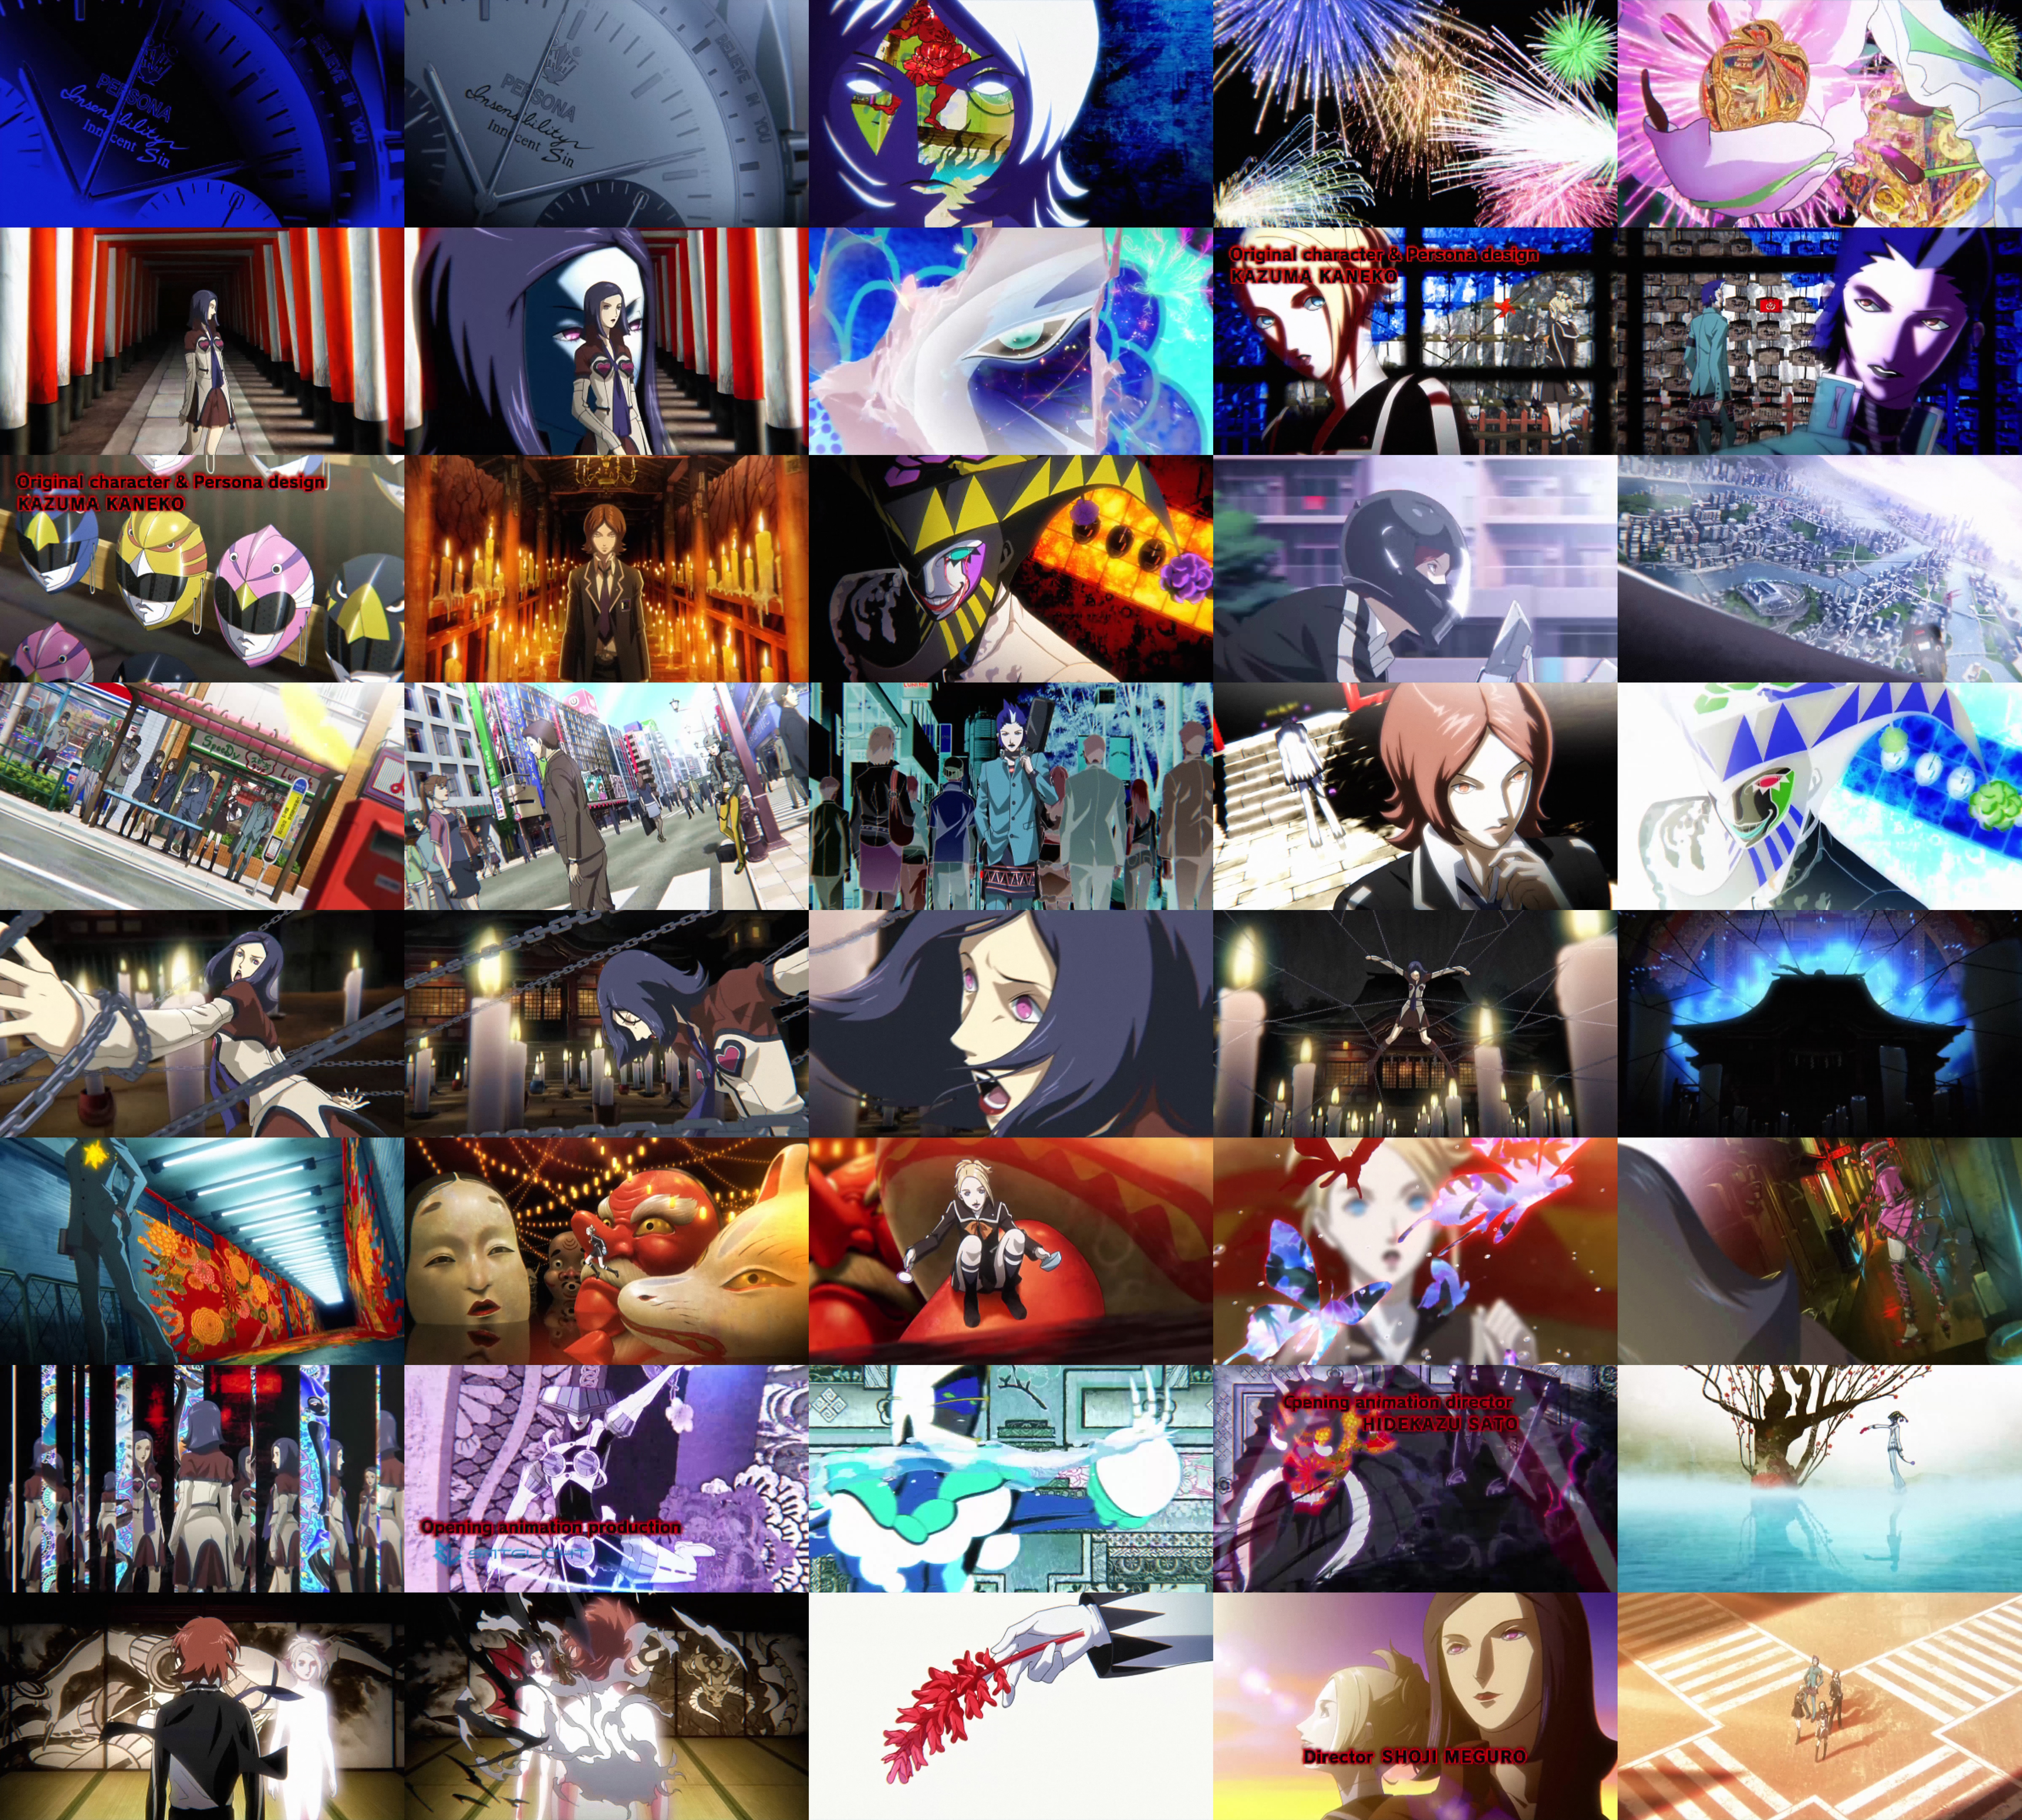 Persona 2 Innocent Sin Opening (Captures) by marblegallery7